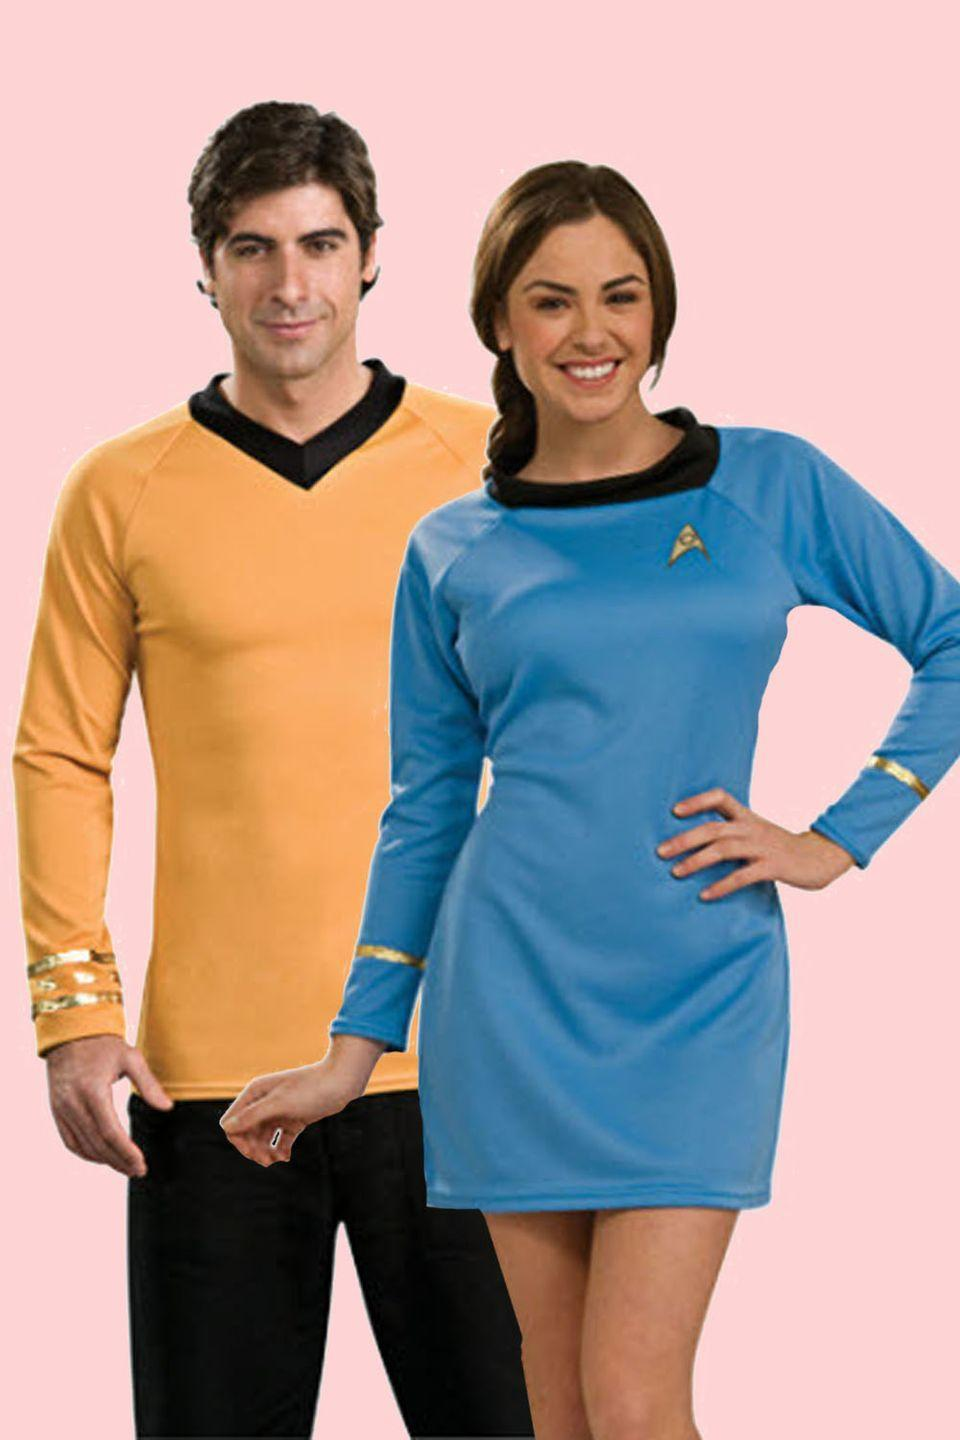 """<p>Beam us up, Scotty. Join the Starfleet with a pair of iconic sci-fi costumes worthy of a spot on the Enterprise.</p><p><a class=""""link rapid-noclick-resp"""" href=""""https://go.redirectingat.com?id=74968X1596630&url=https%3A%2F%2Fwww.halloweenexpress.com%2Fadult-classic-star-trek-costume%2F&sref=https%3A%2F%2Fwww.goodhousekeeping.com%2Fholidays%2Fhalloween-ideas%2Fg2625%2Fhalloween-costumes-for-couples%2F"""" rel=""""nofollow noopener"""" target=""""_blank"""" data-ylk=""""slk:SHOP YELLOW 'STAR TREK' COSTUME"""">SHOP YELLOW 'STAR TREK' COSTUME</a></p><p> <a class=""""link rapid-noclick-resp"""" href=""""https://go.redirectingat.com?id=74968X1596630&url=https%3A%2F%2Fwww.halloweenexpress.com%2Fwomens-blue-star-trek-costume%2F&sref=https%3A%2F%2Fwww.goodhousekeeping.com%2Fholidays%2Fhalloween-ideas%2Fg2625%2Fhalloween-costumes-for-couples%2F"""" rel=""""nofollow noopener"""" target=""""_blank"""" data-ylk=""""slk:SHOP BLUE 'STAR TREK' COSTUME"""">SHOP BLUE 'STAR TREK' COSTUME</a> </p>"""